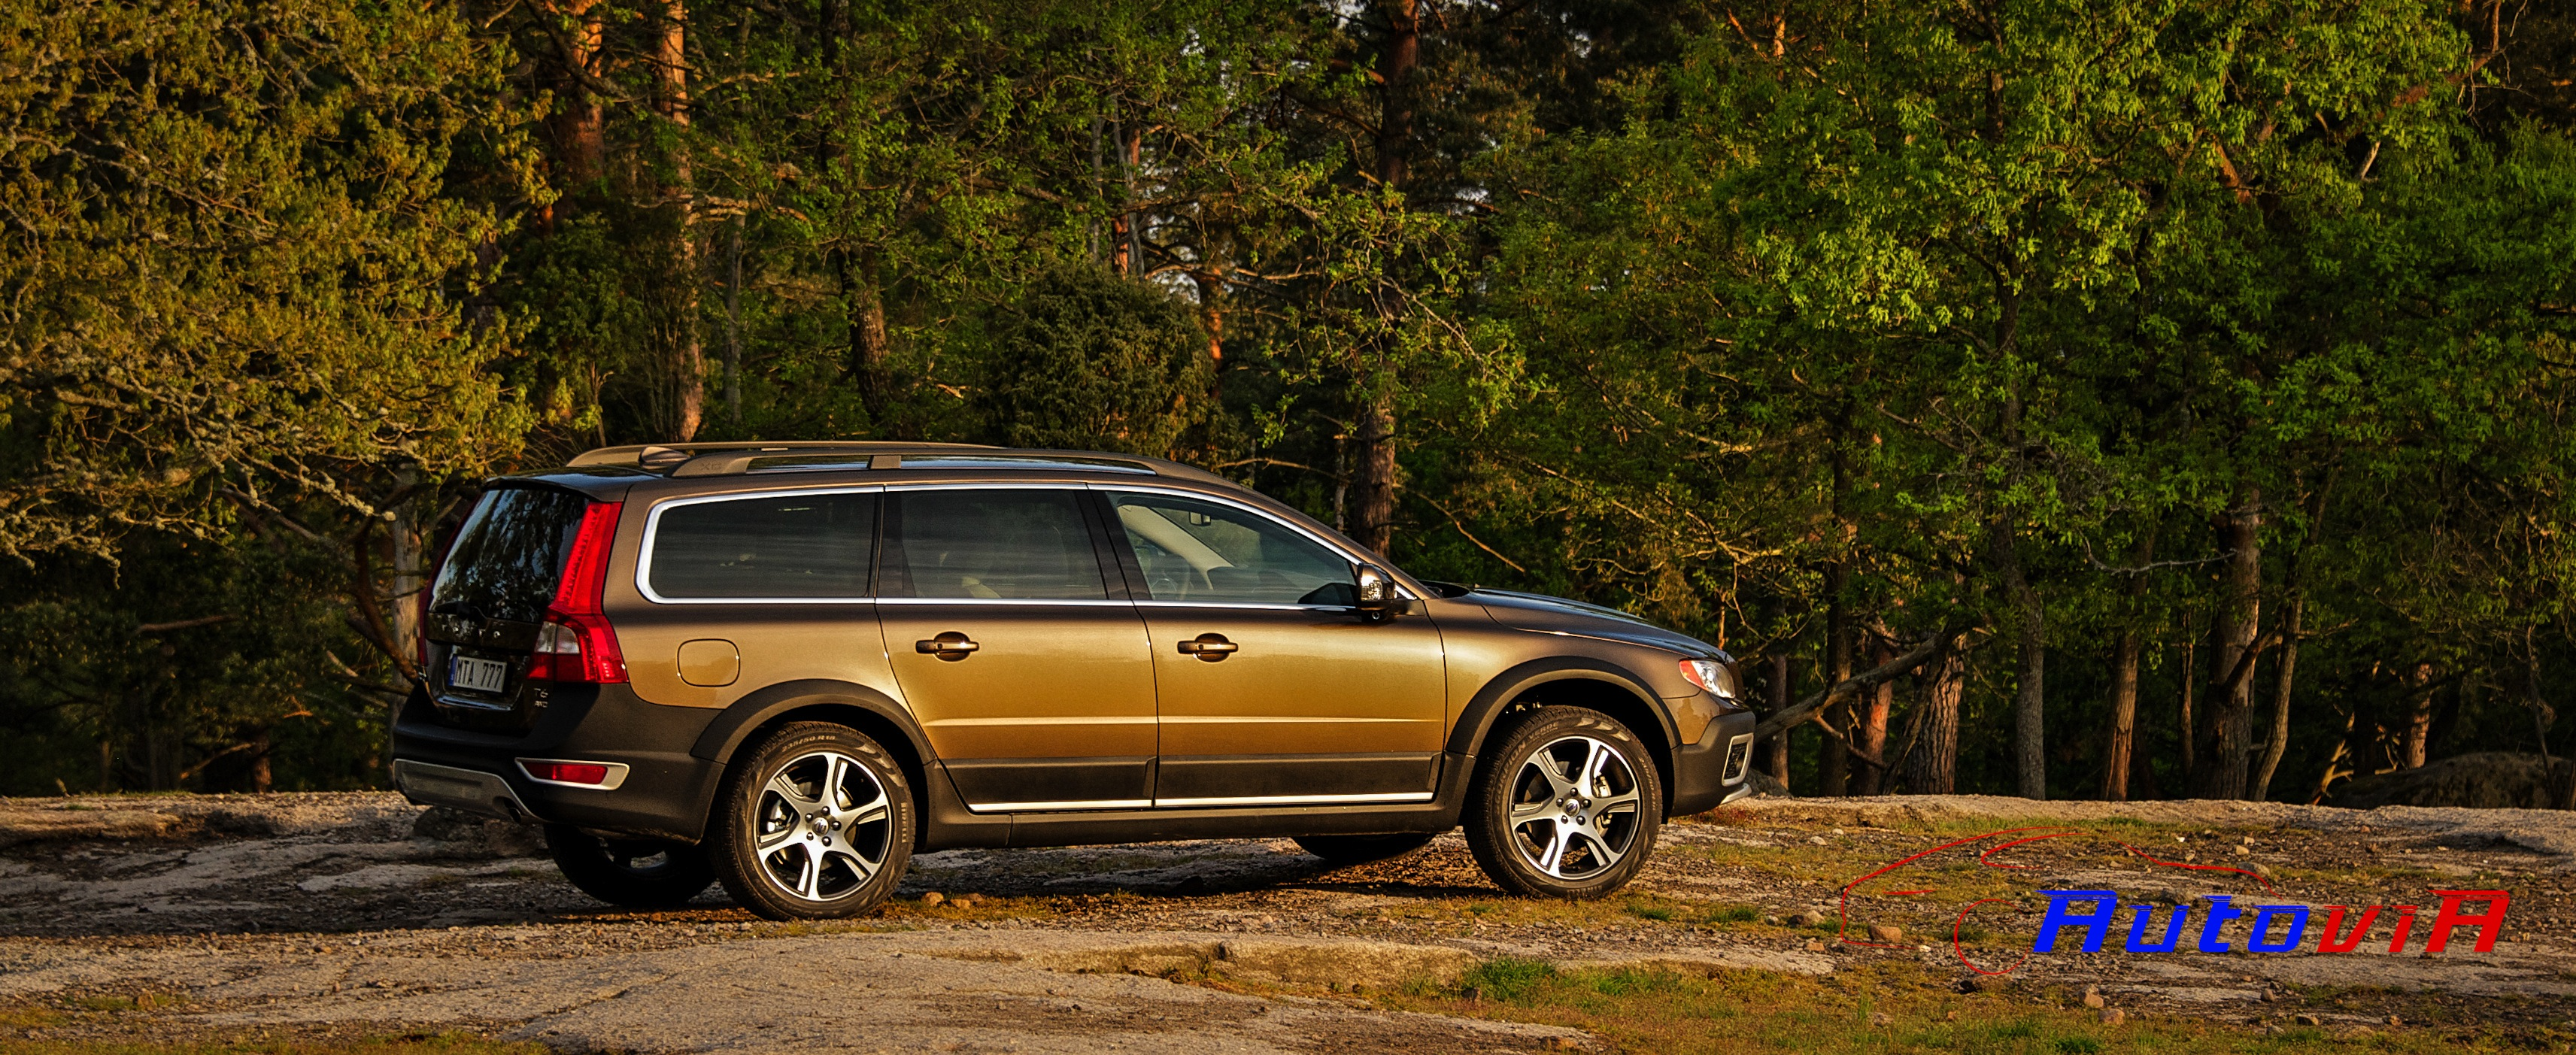 2013 volvo xc70 iii pictures information and specs. Black Bedroom Furniture Sets. Home Design Ideas